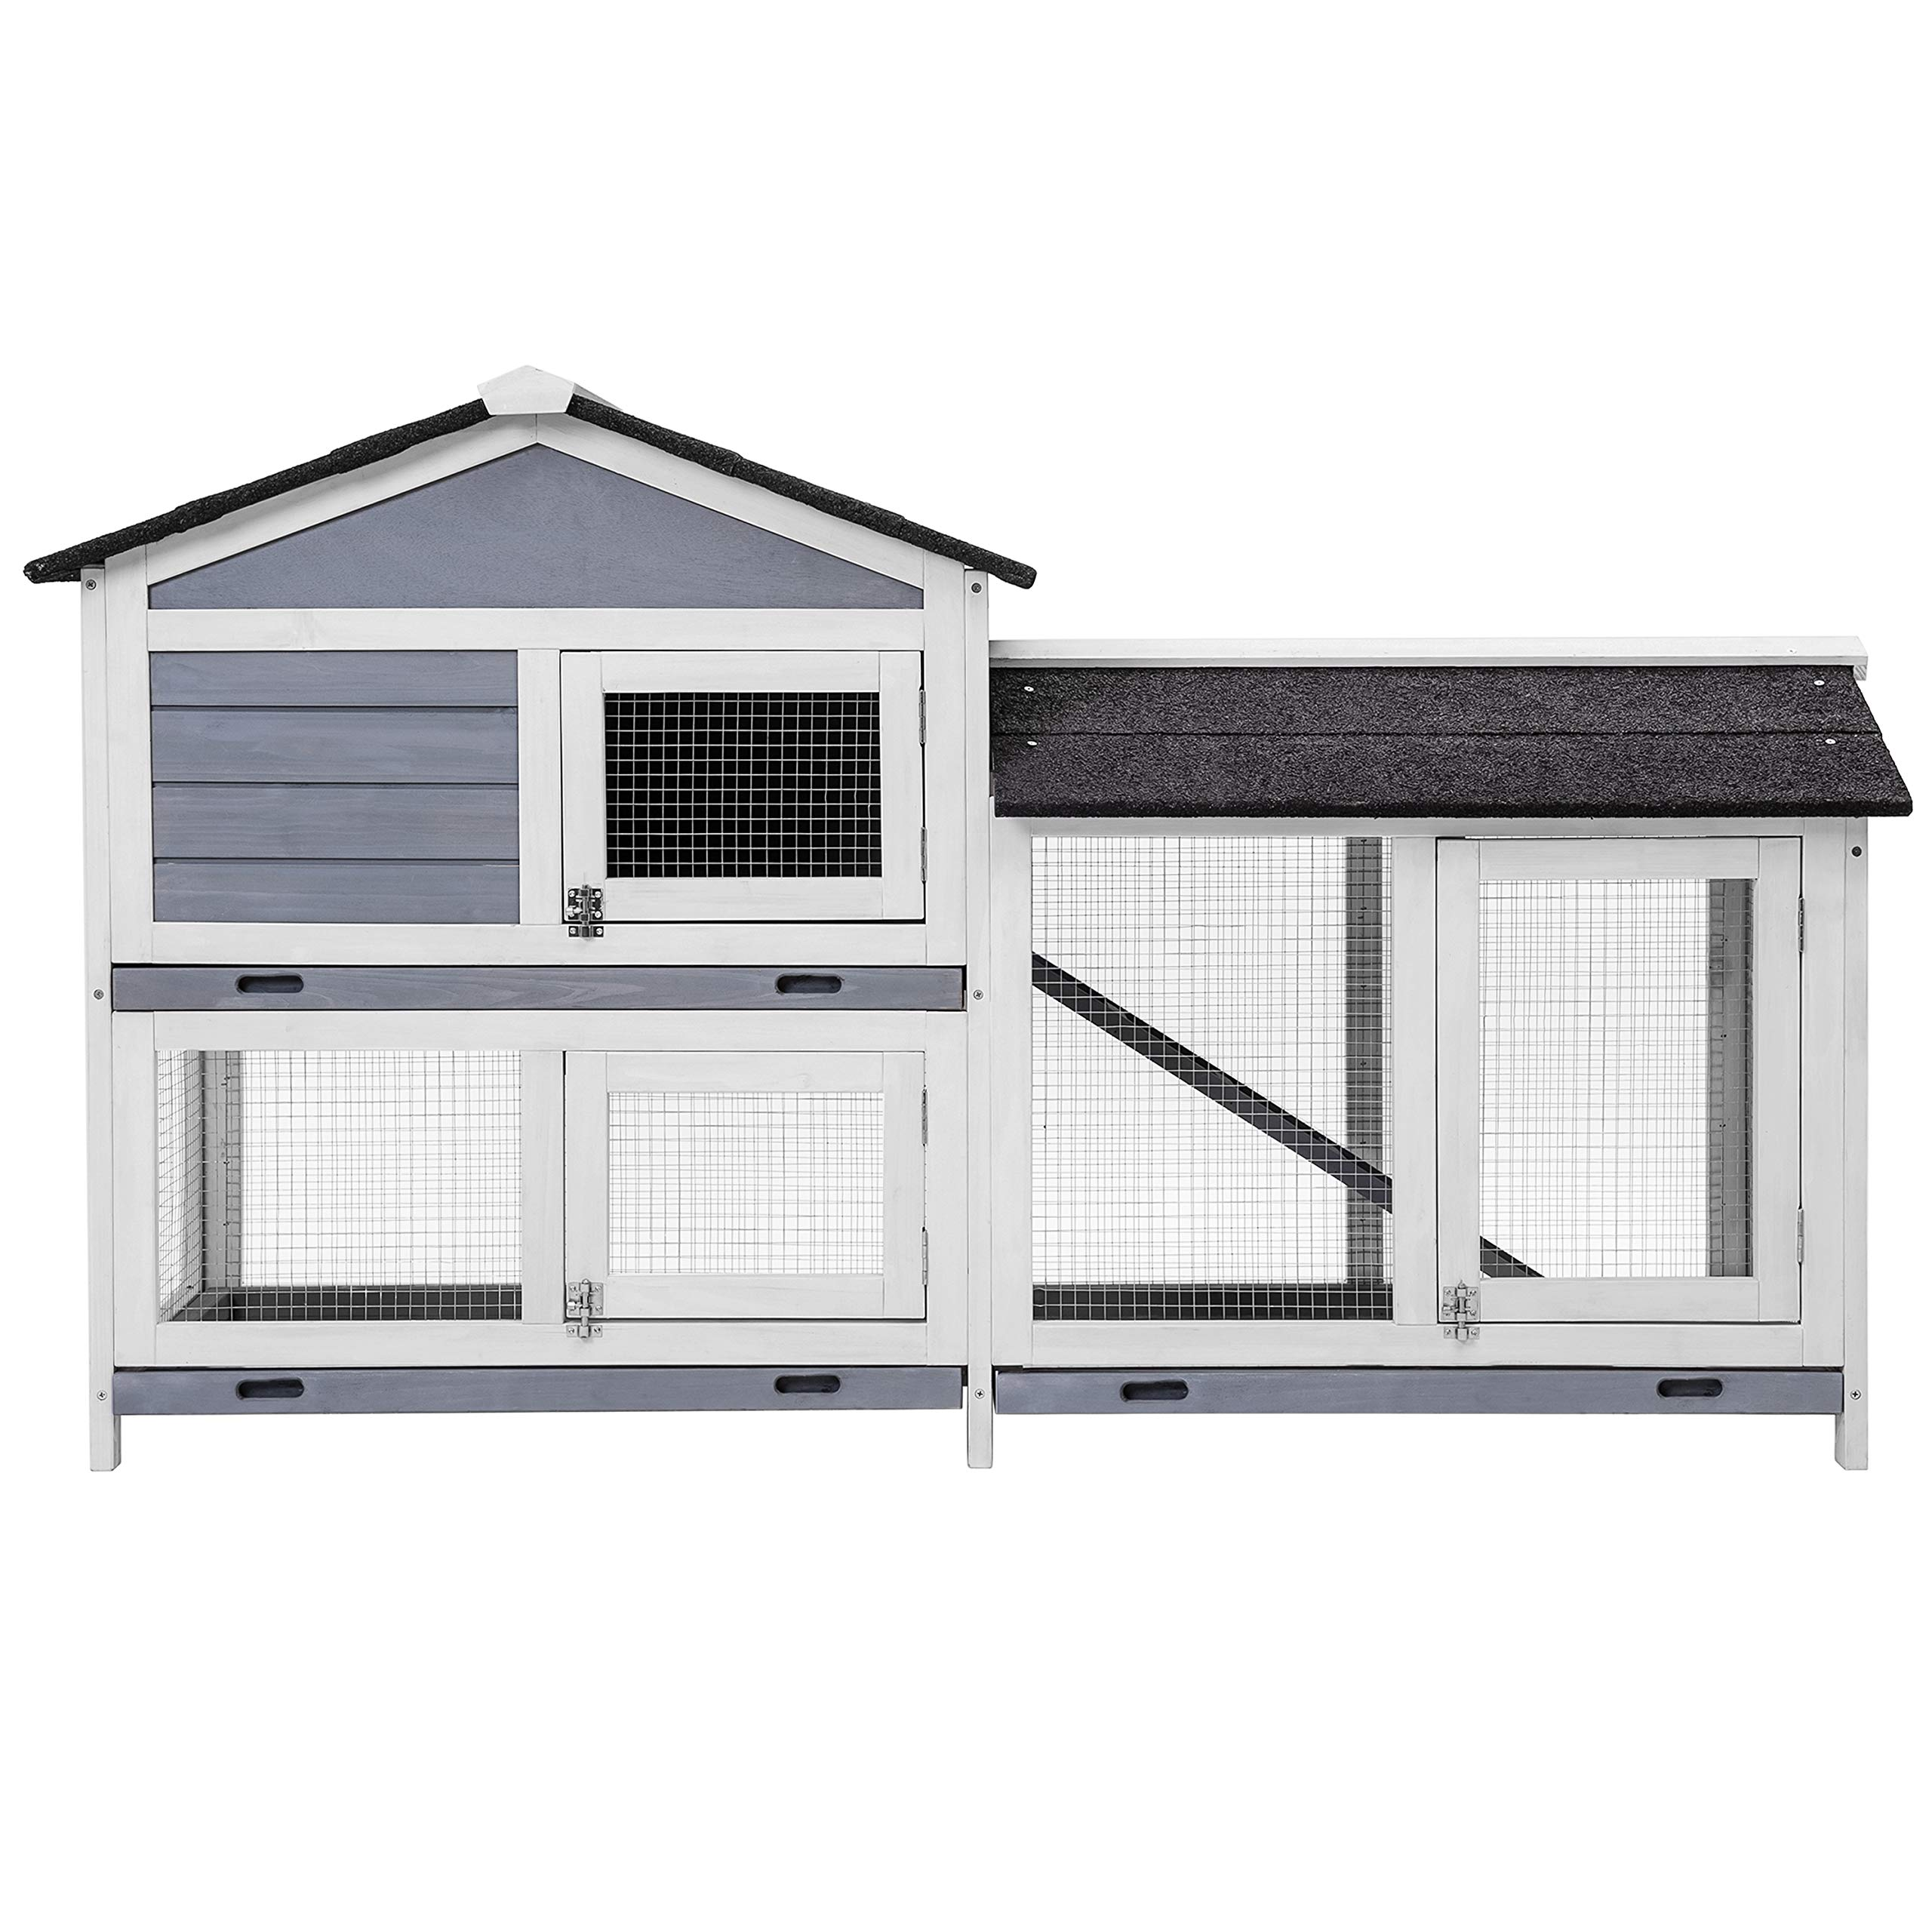 Purlove Pet Rabbit Hutch Wooden Bunny Cage Small Animals House for Outdoor/Indoor Use by PURLOVE